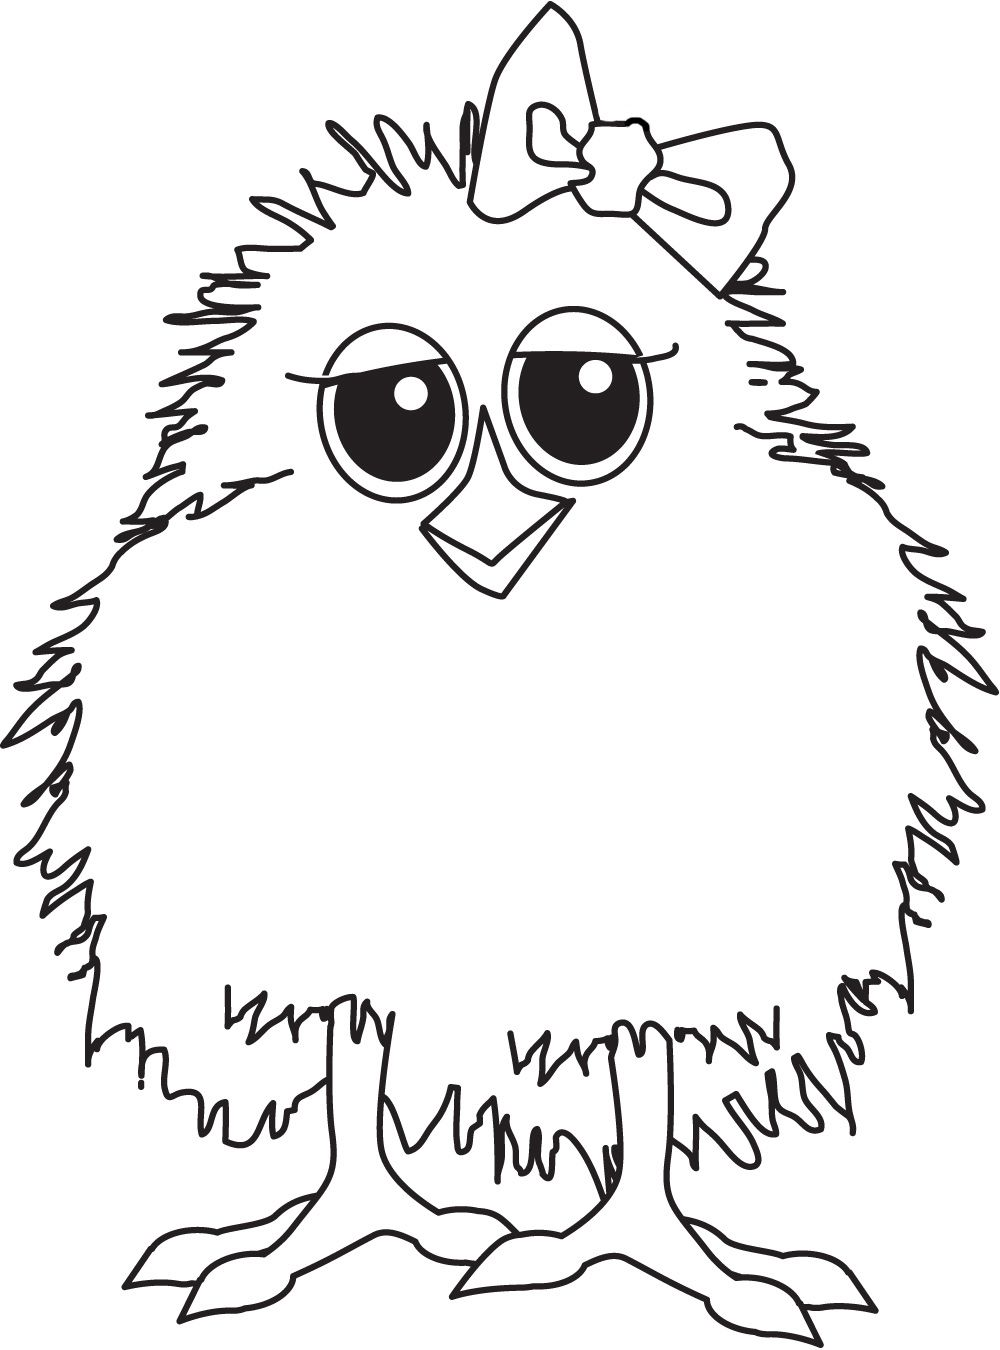 easter chicks coloring pages   Easter chicks coloring pages   Rita ...